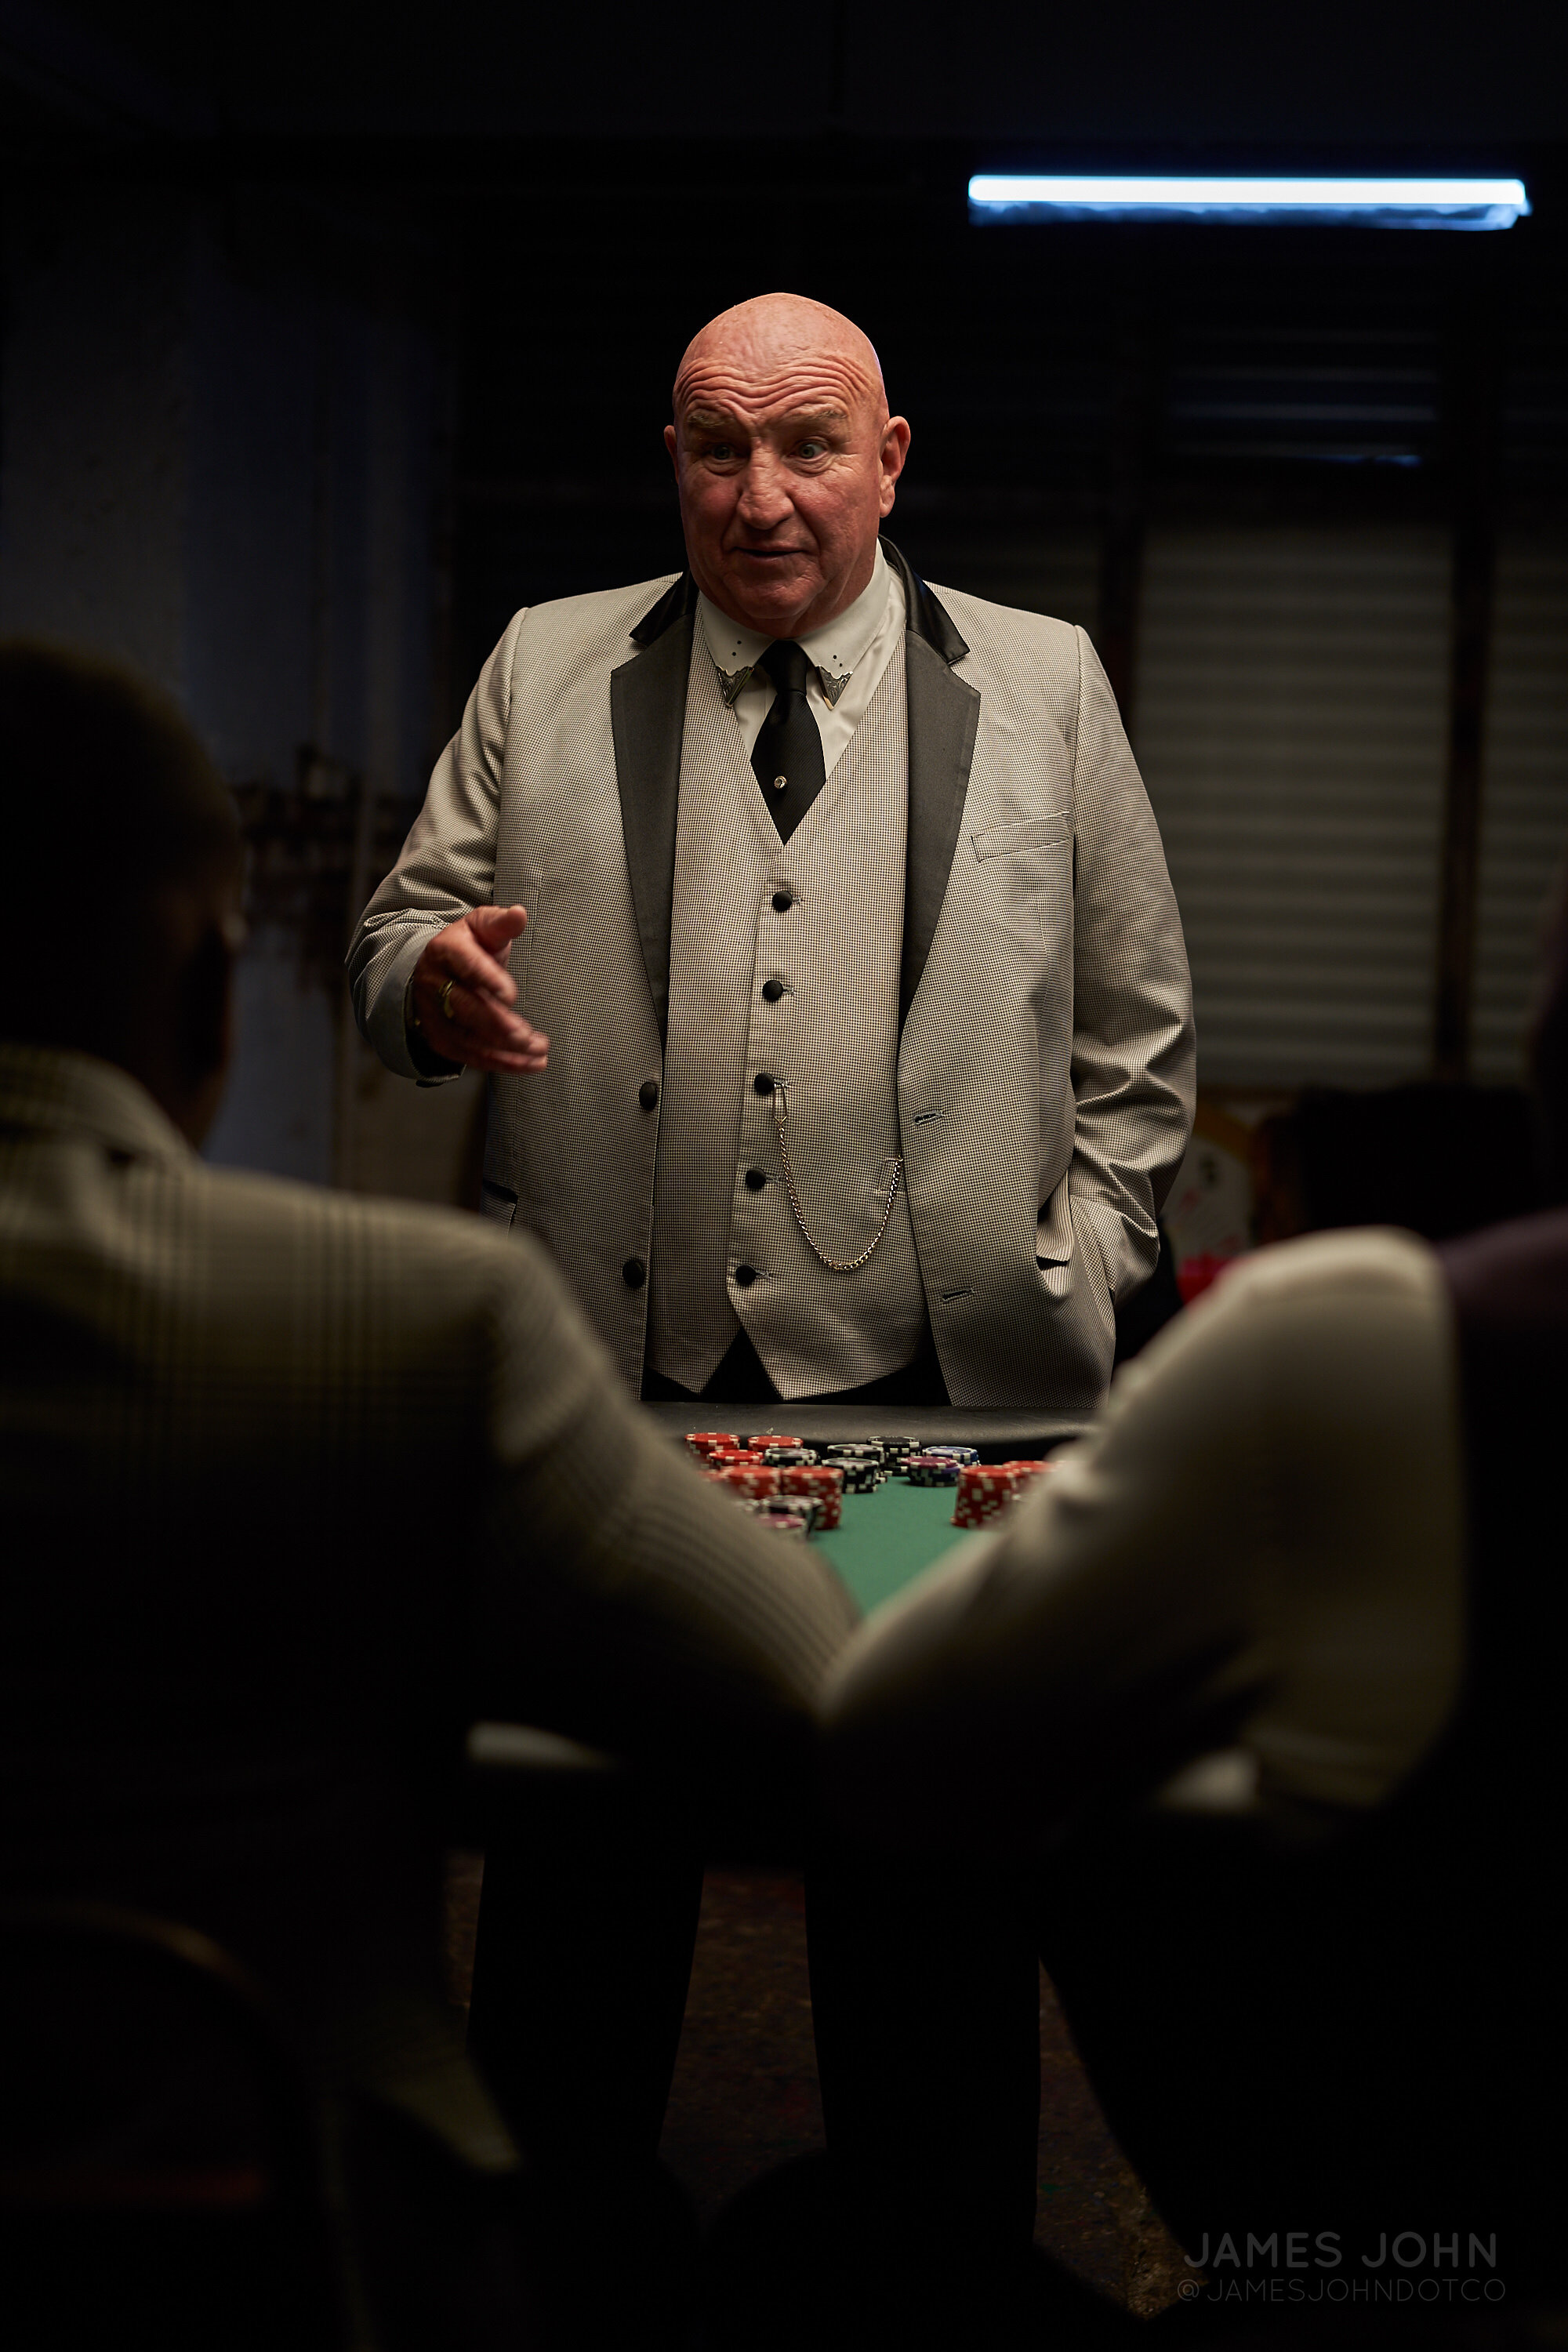 Dave Courtney in 'Playing 4 Keeps' - Photography by James John